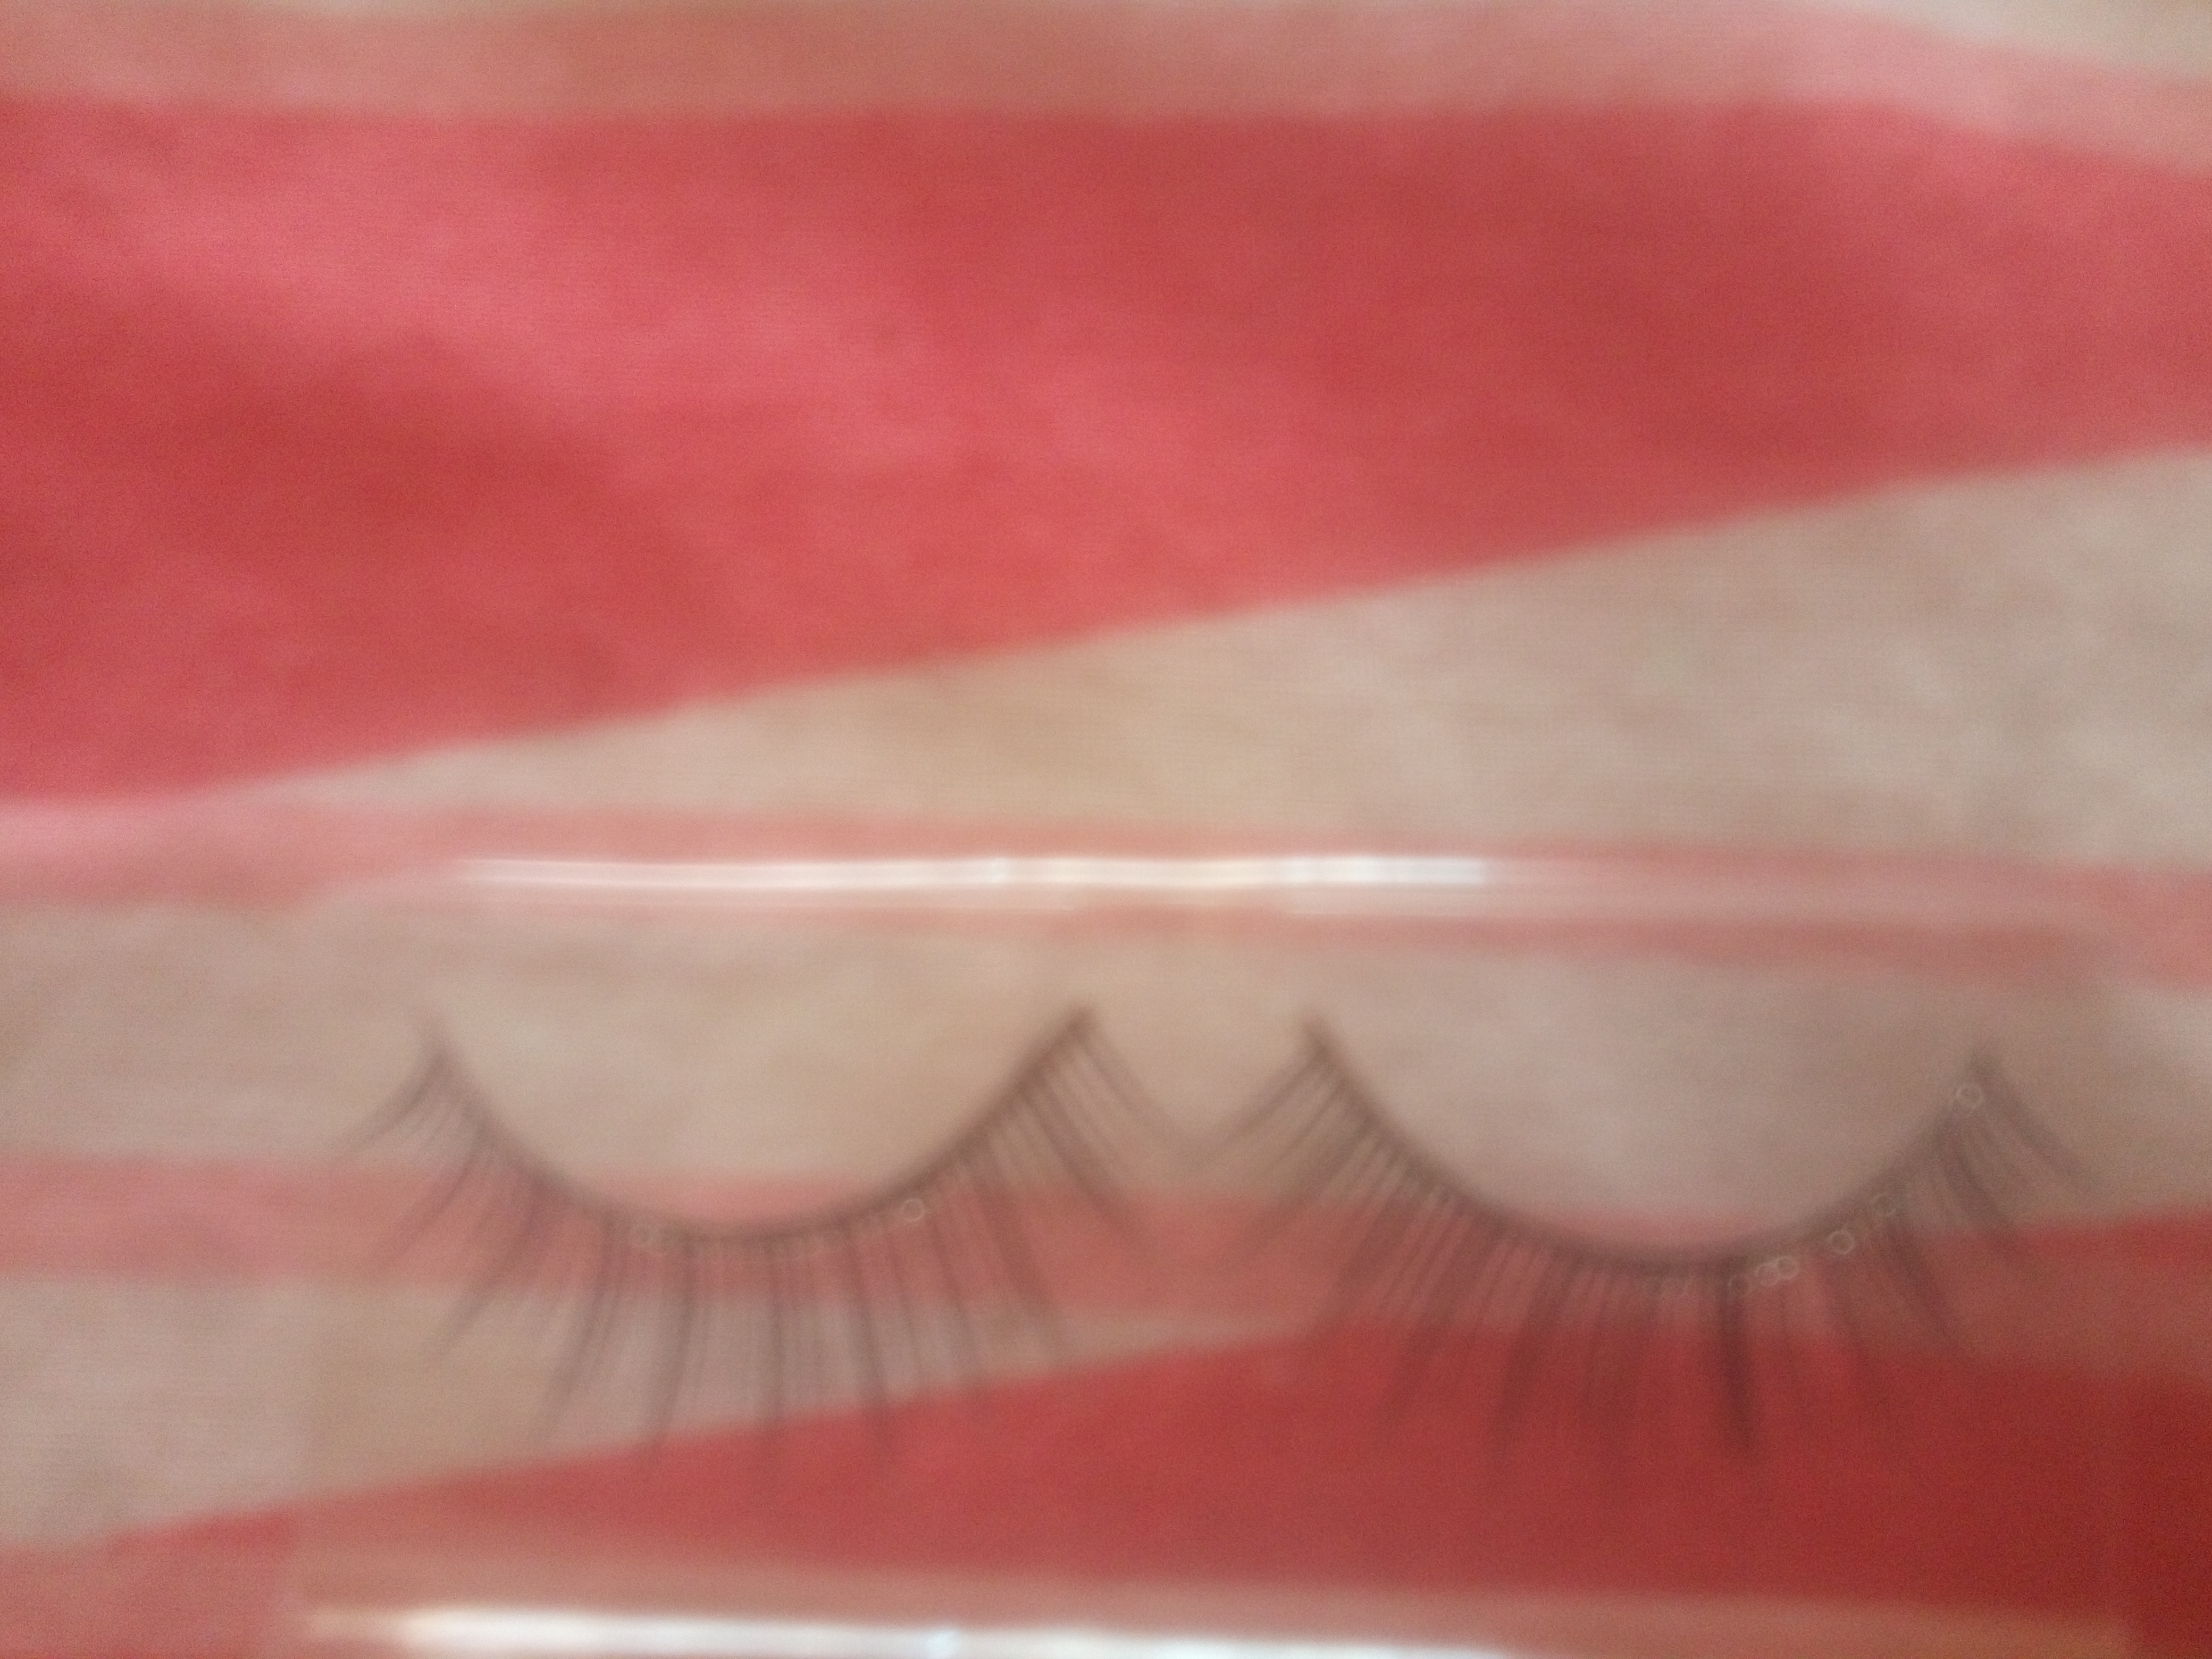 MAC 36 Lash-Naturally angled lashes-By pixie